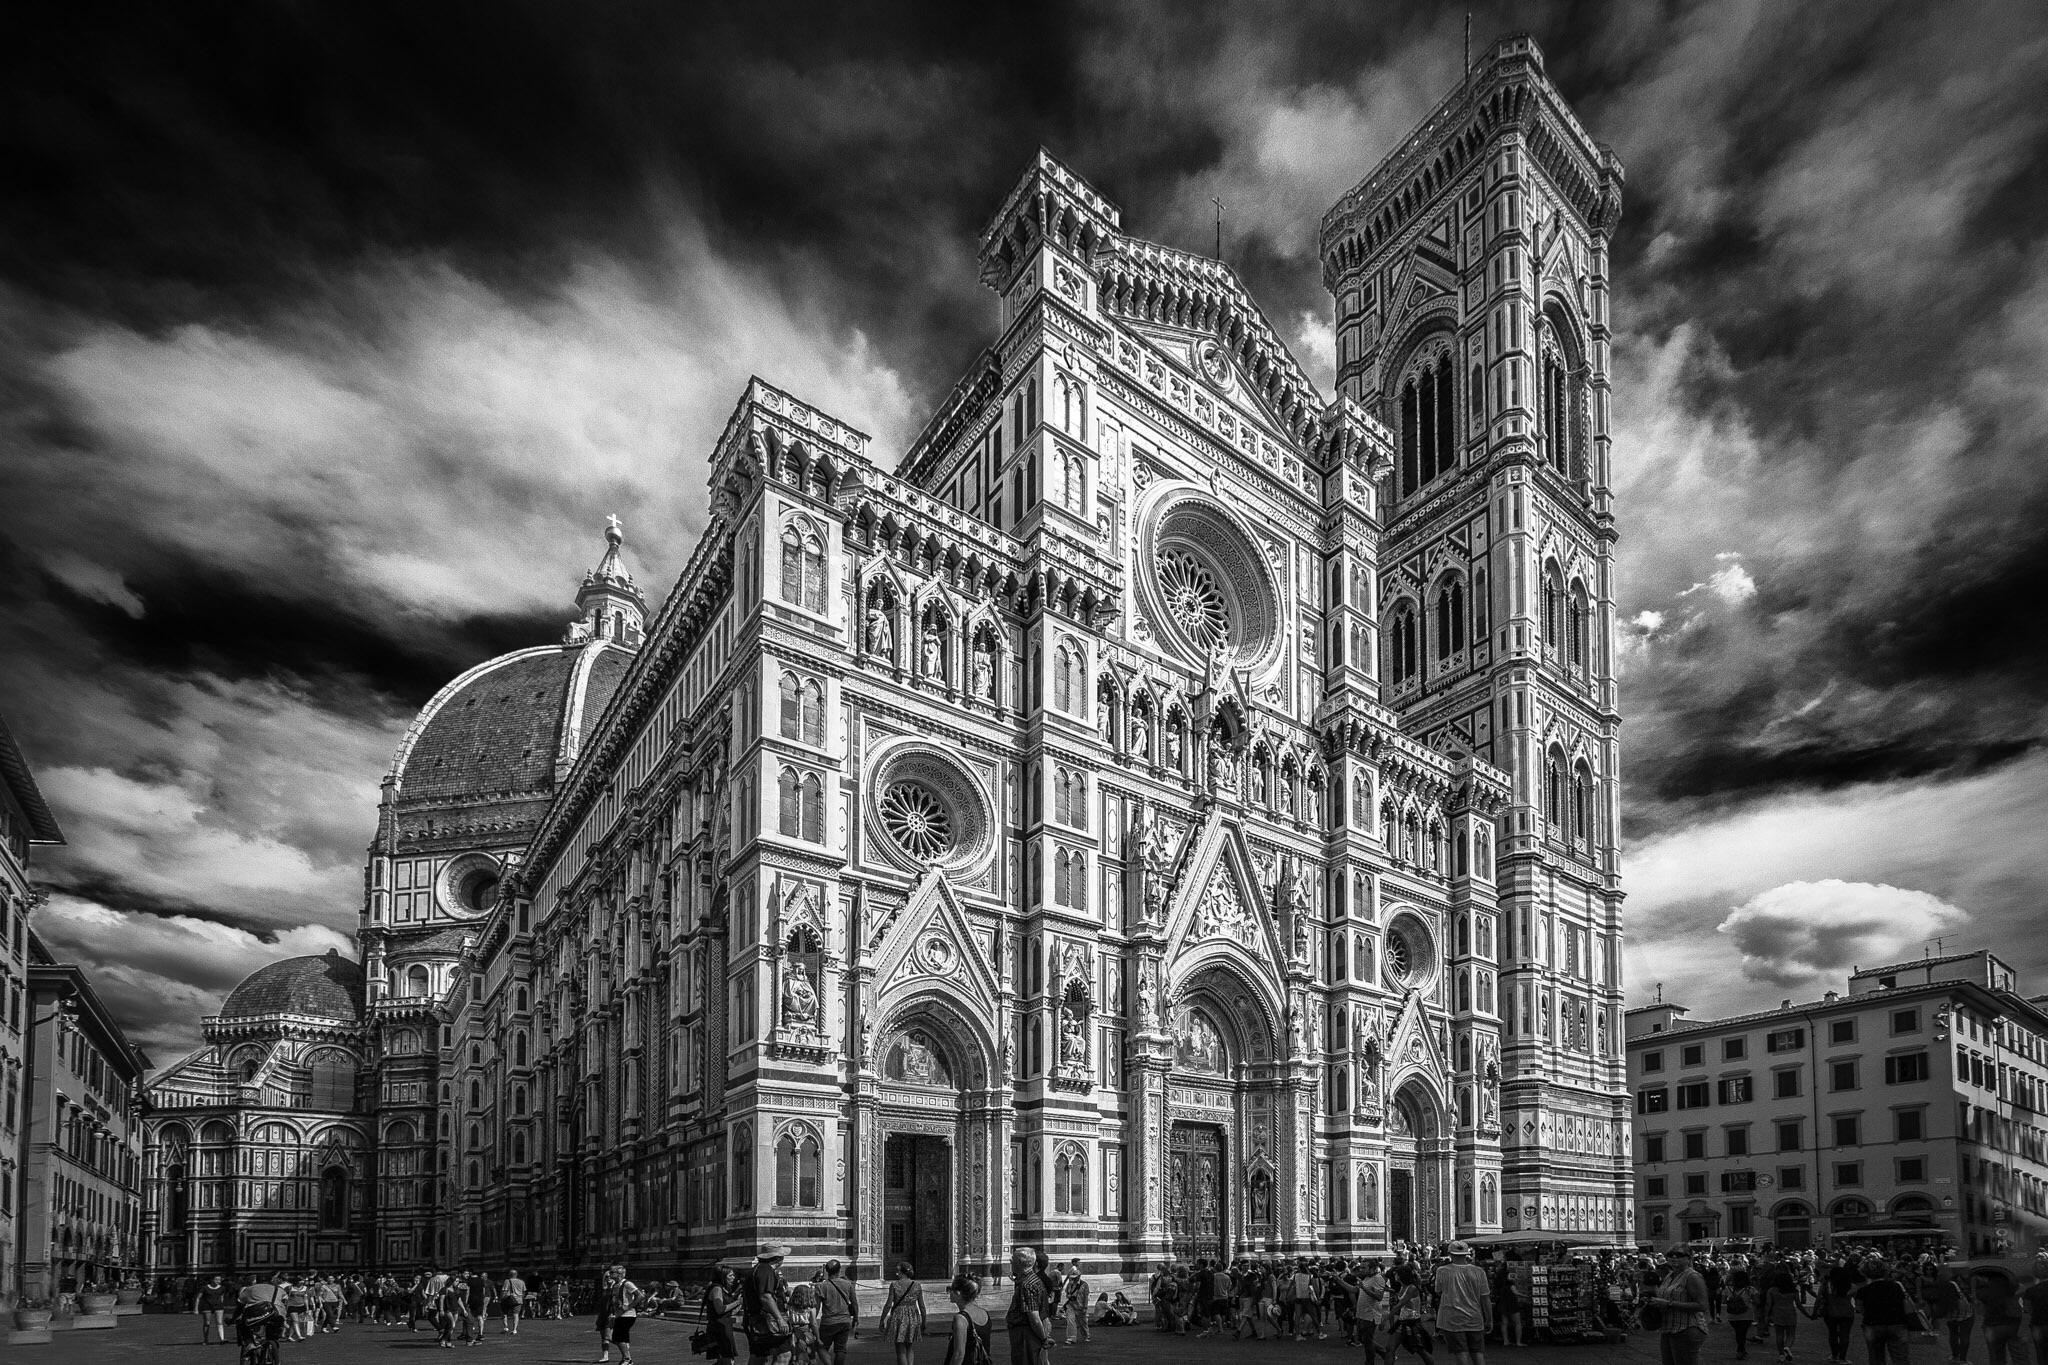 Duomo, Florence. This has to be one of the most imposing buildings I have photographed.